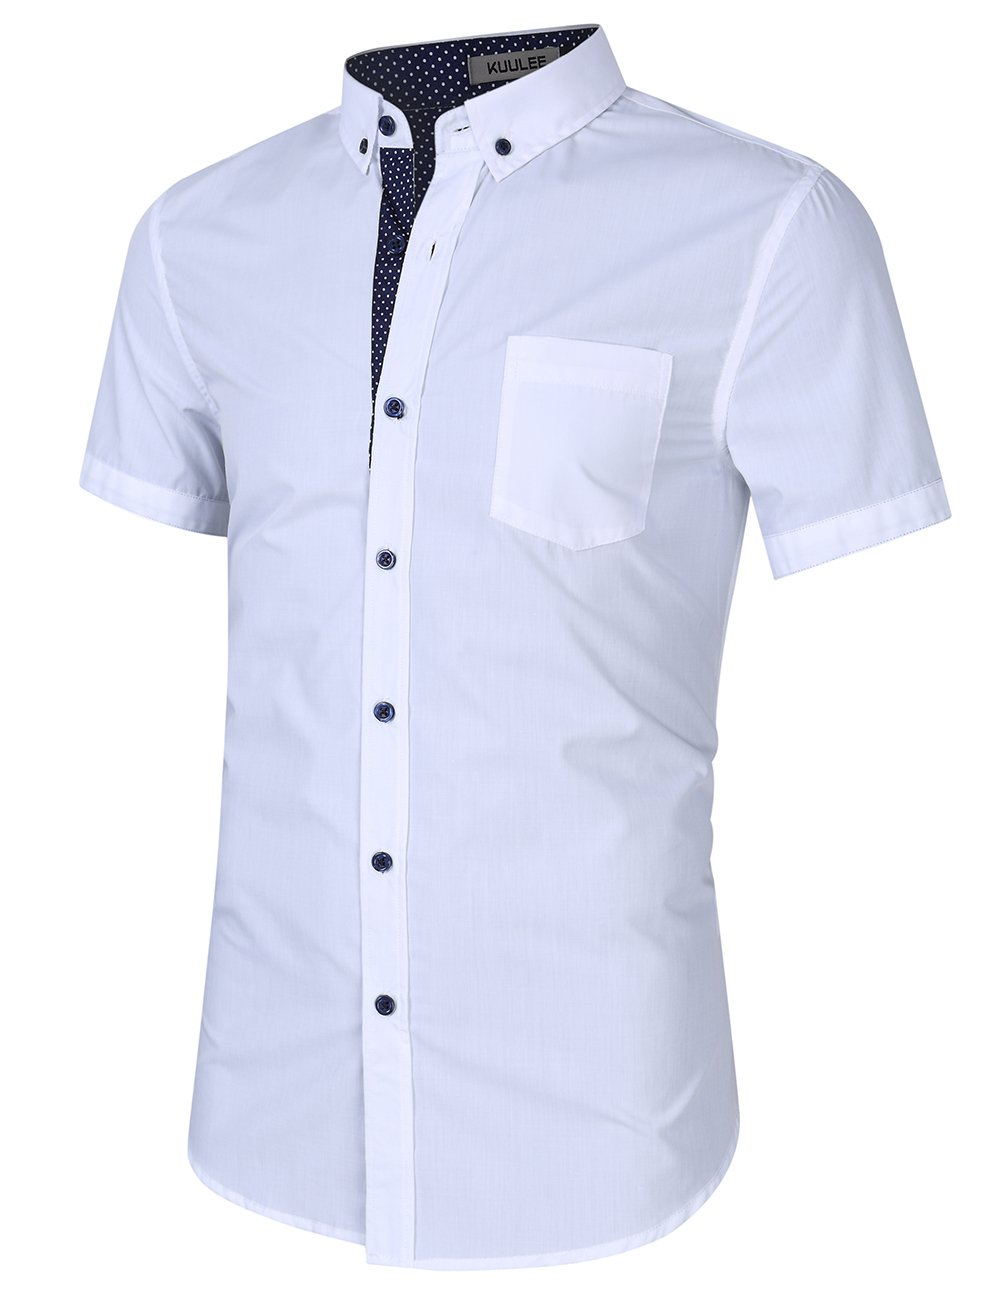 Kuulee Men's Casual Slim Fit Short Sleeve Button Down Business Shirt Cotton Dress Shirts White XXL by Kuulee (Image #2)